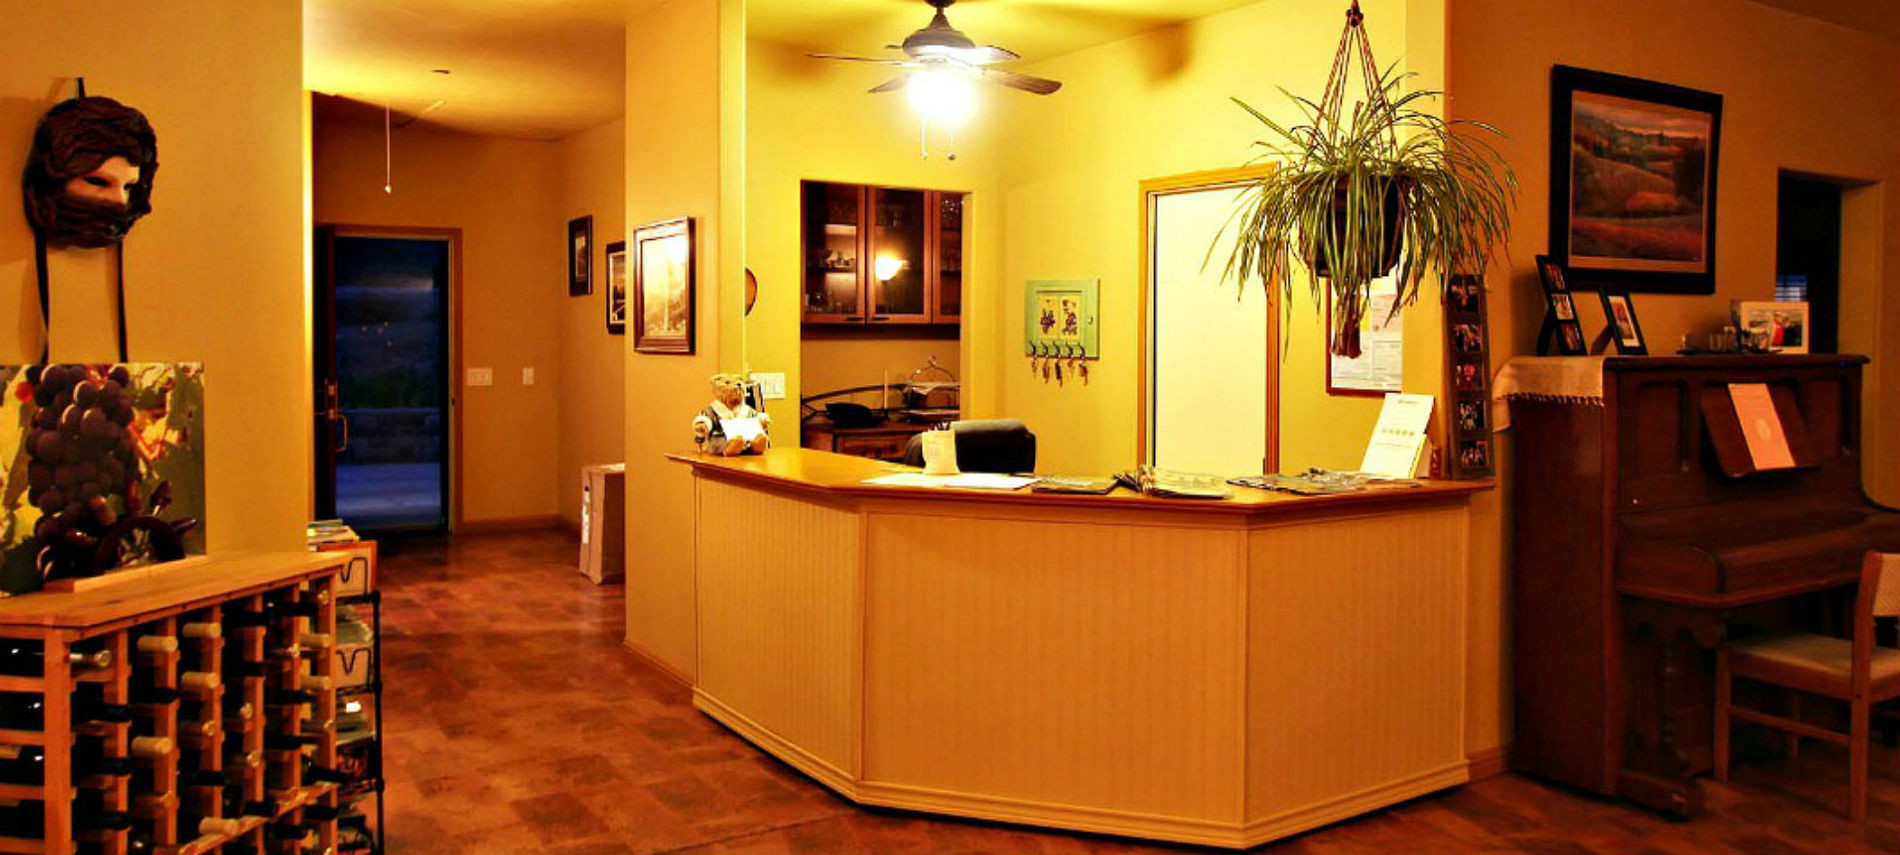 Lucinda's Reception desk next to the Great Room with the yellow wall and brown floor